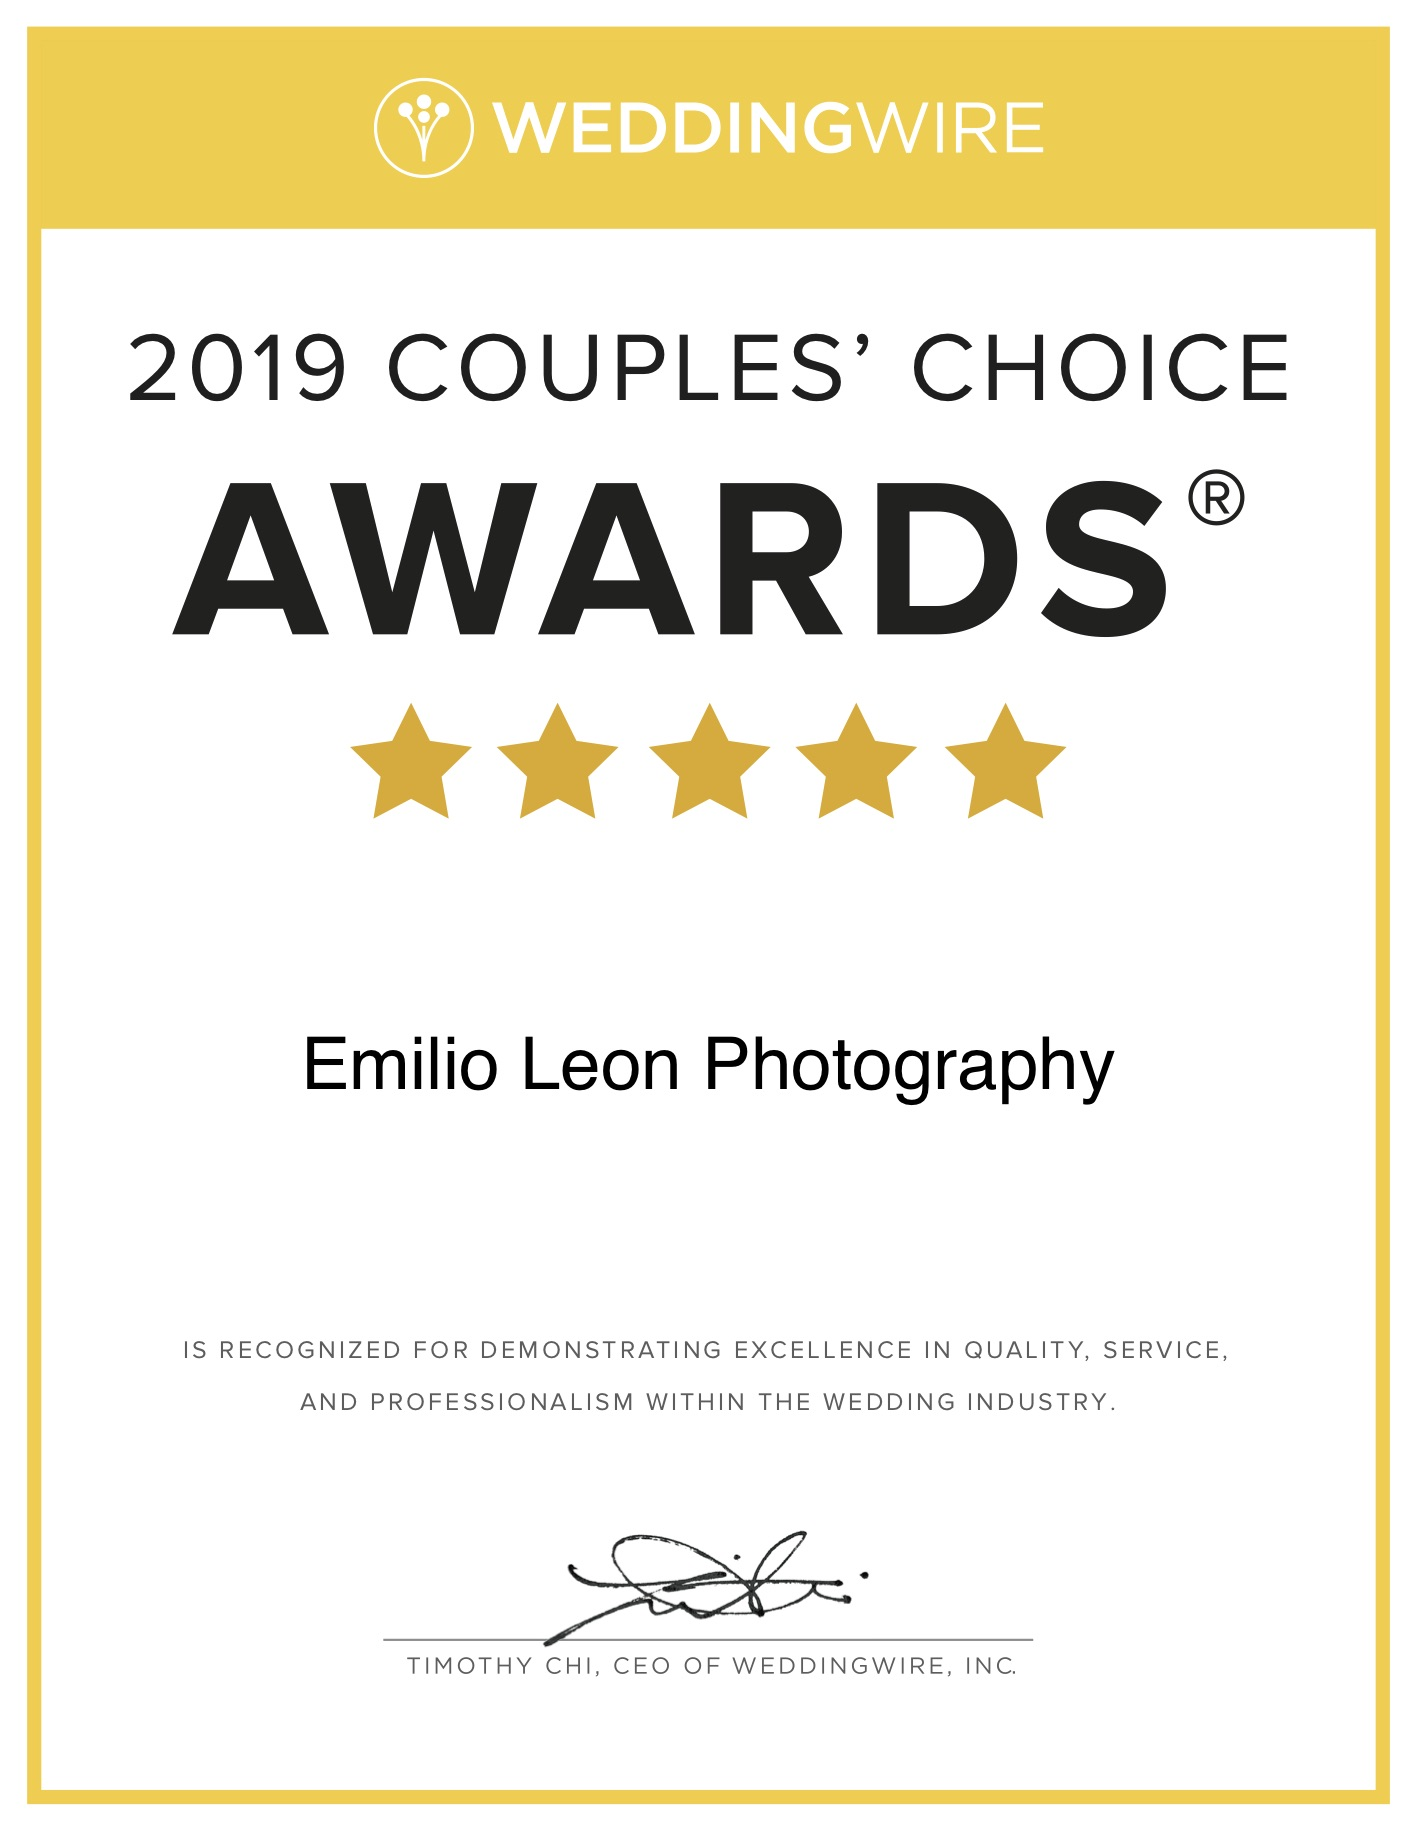 Couples_Choice_Awards_2019 2.jpg